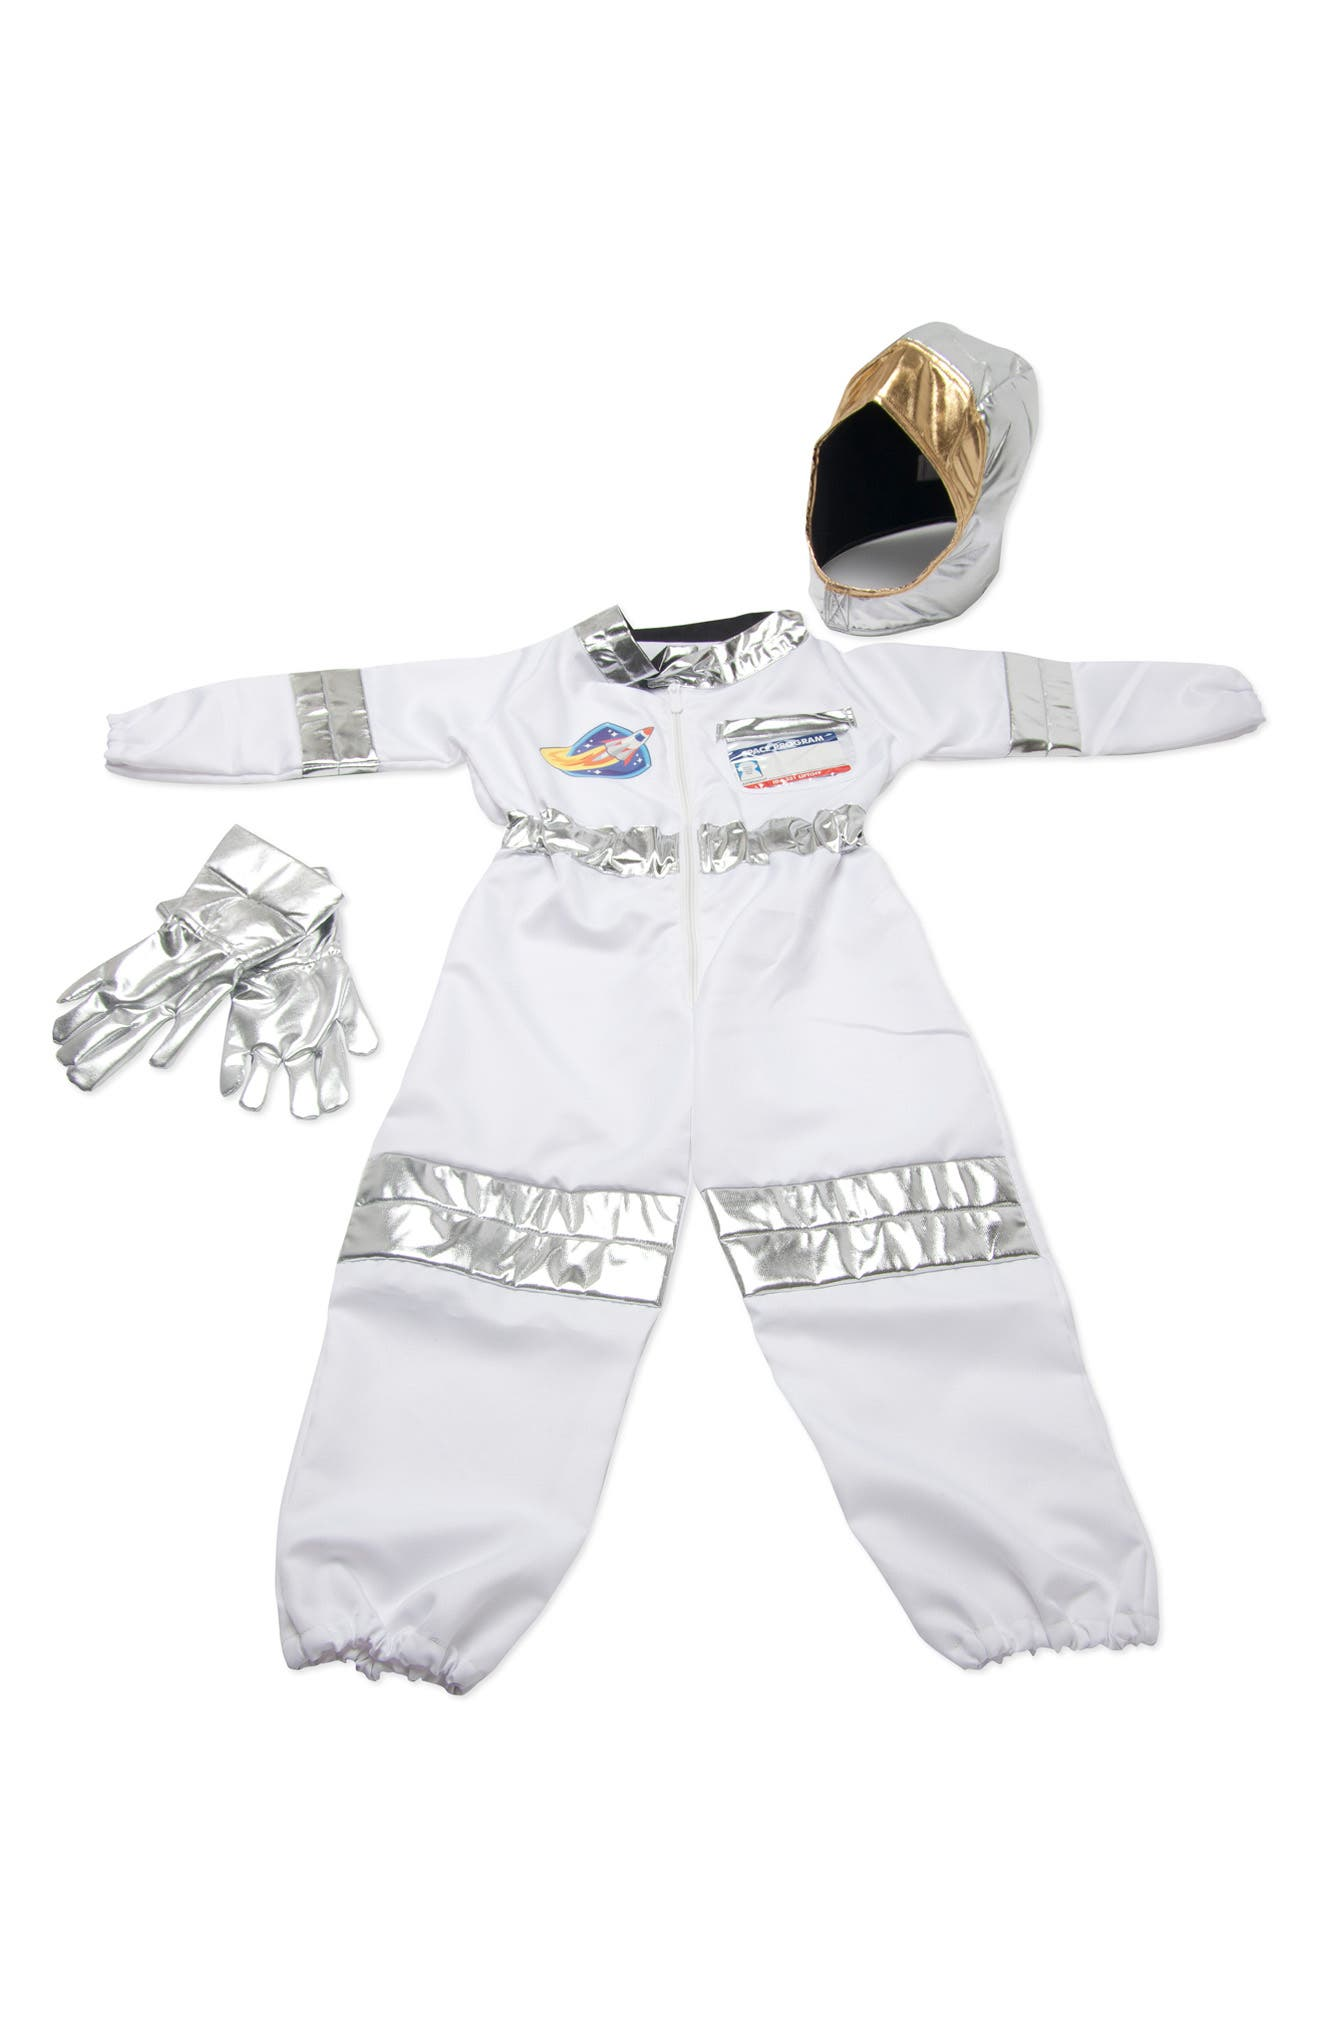 Astronaut Role Play Set,                         Main,                         color, 040